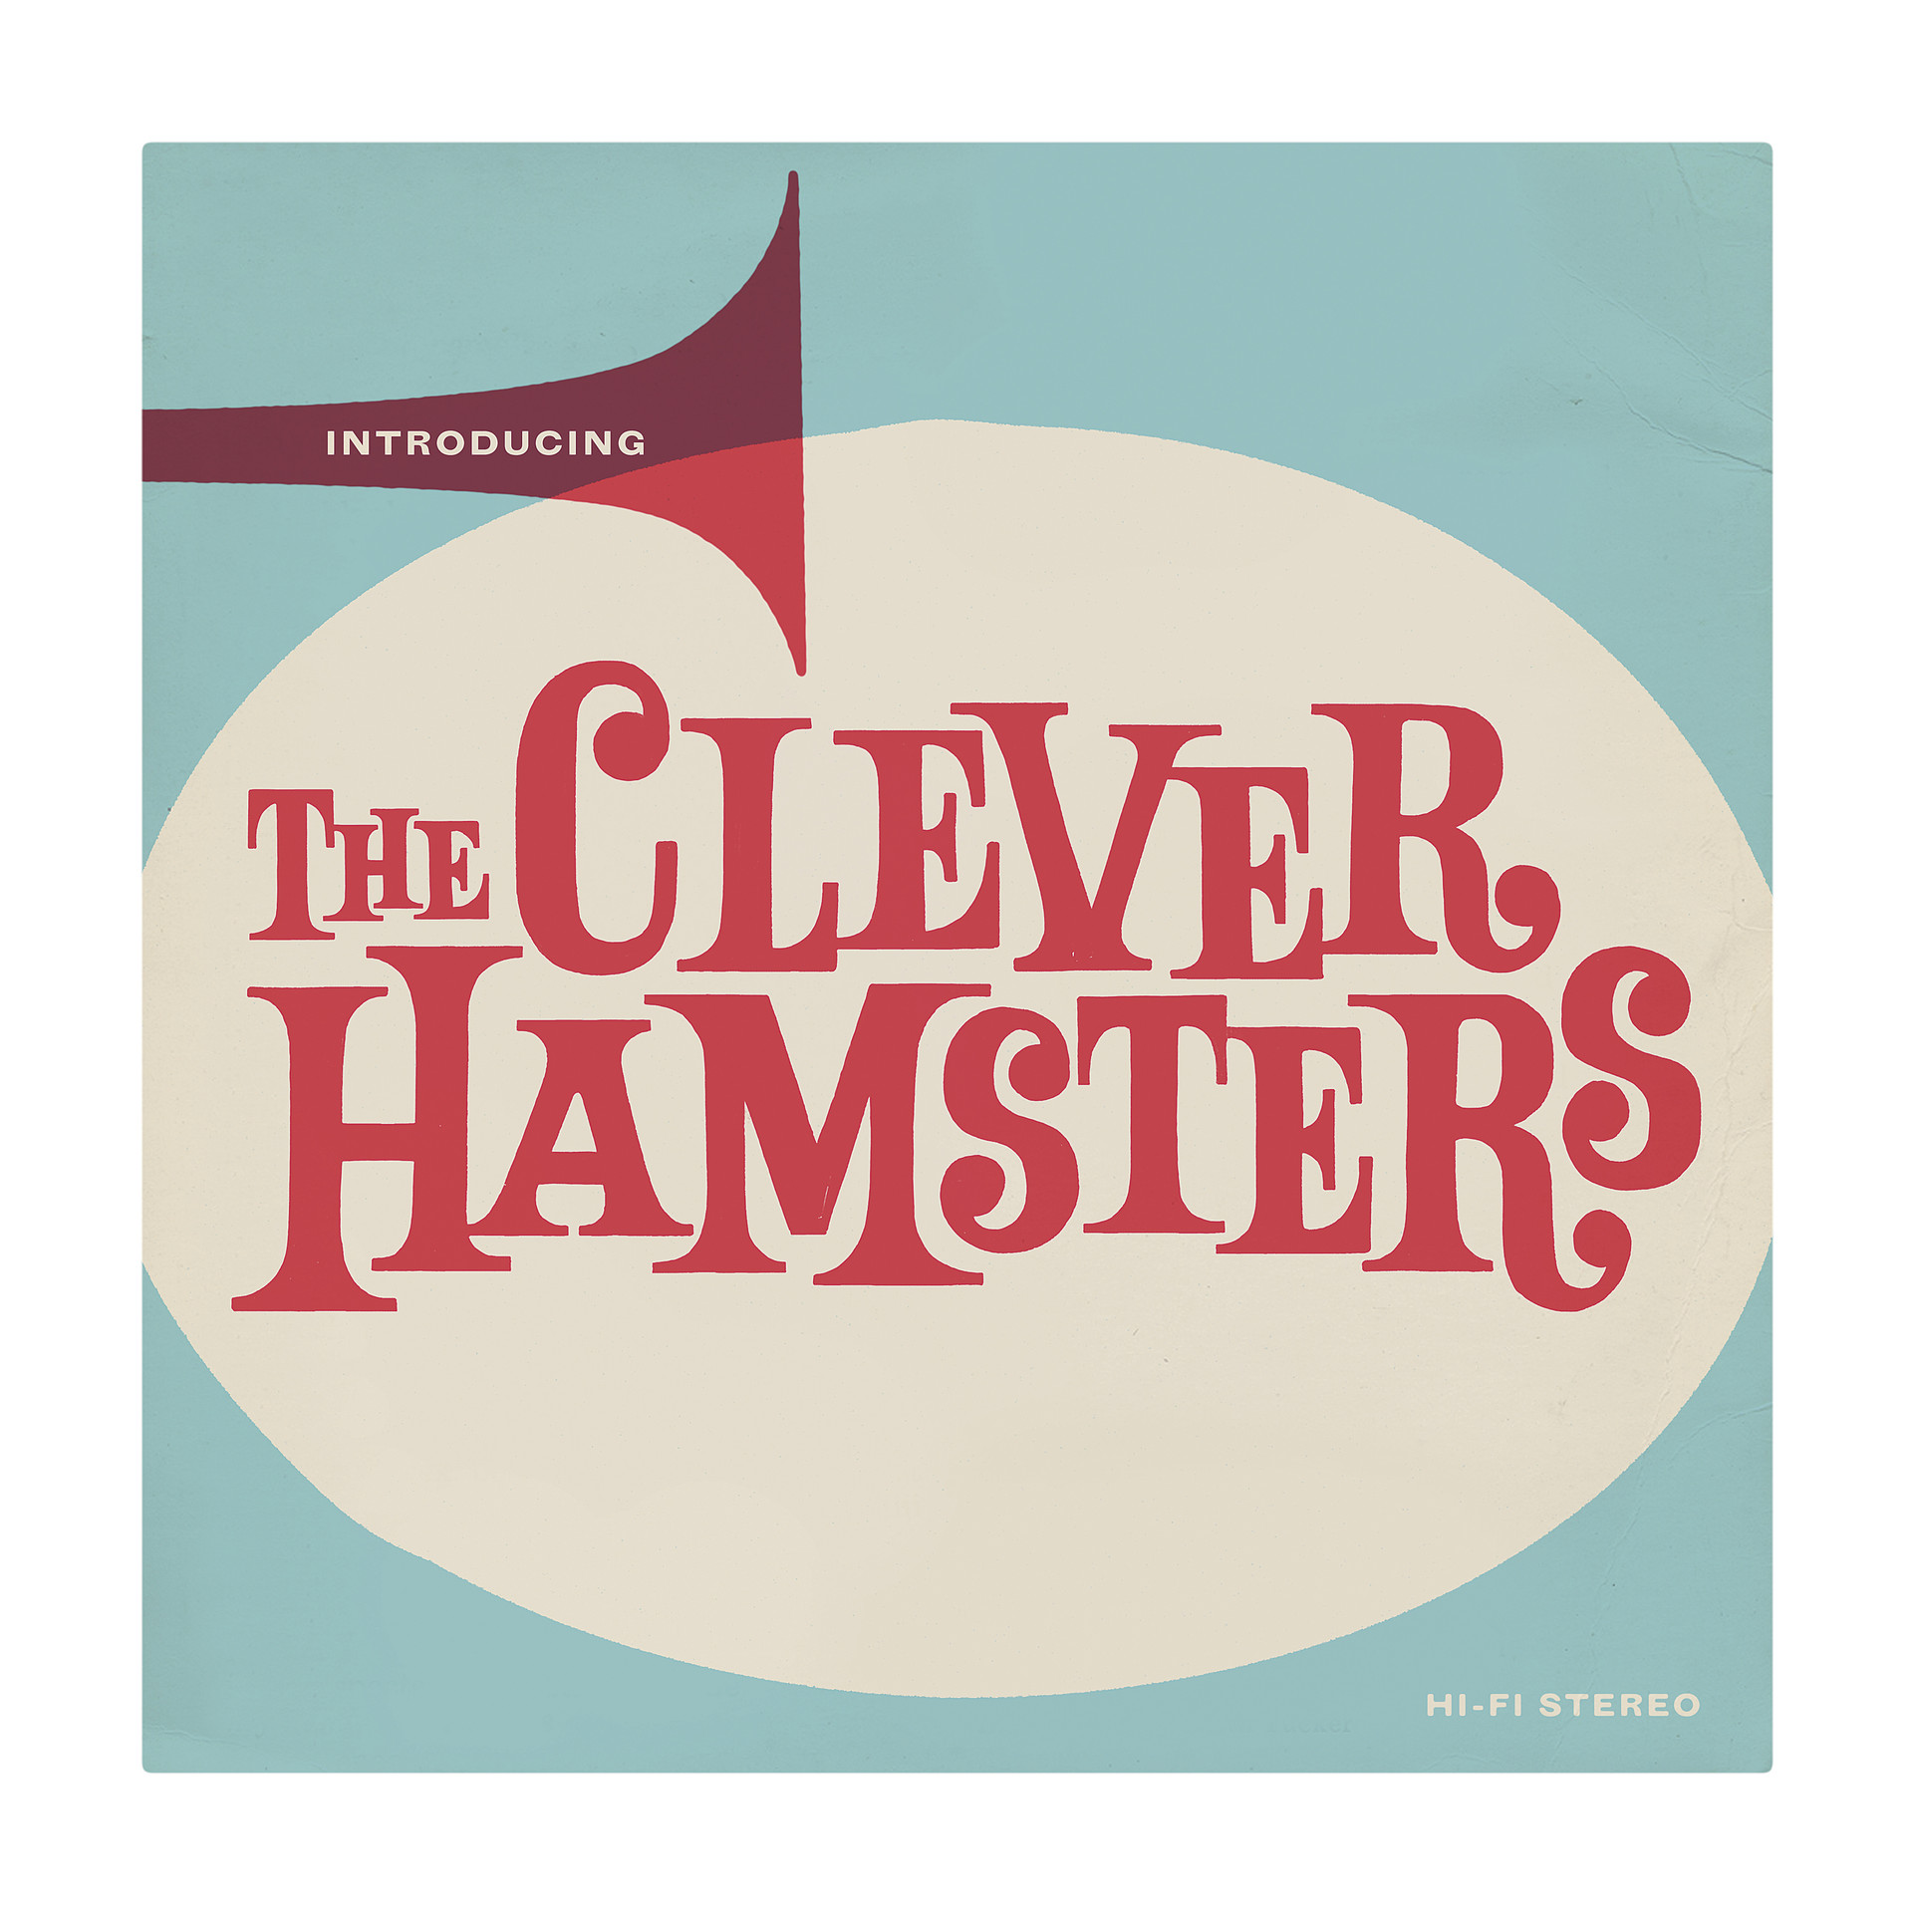 Clever Hamsters